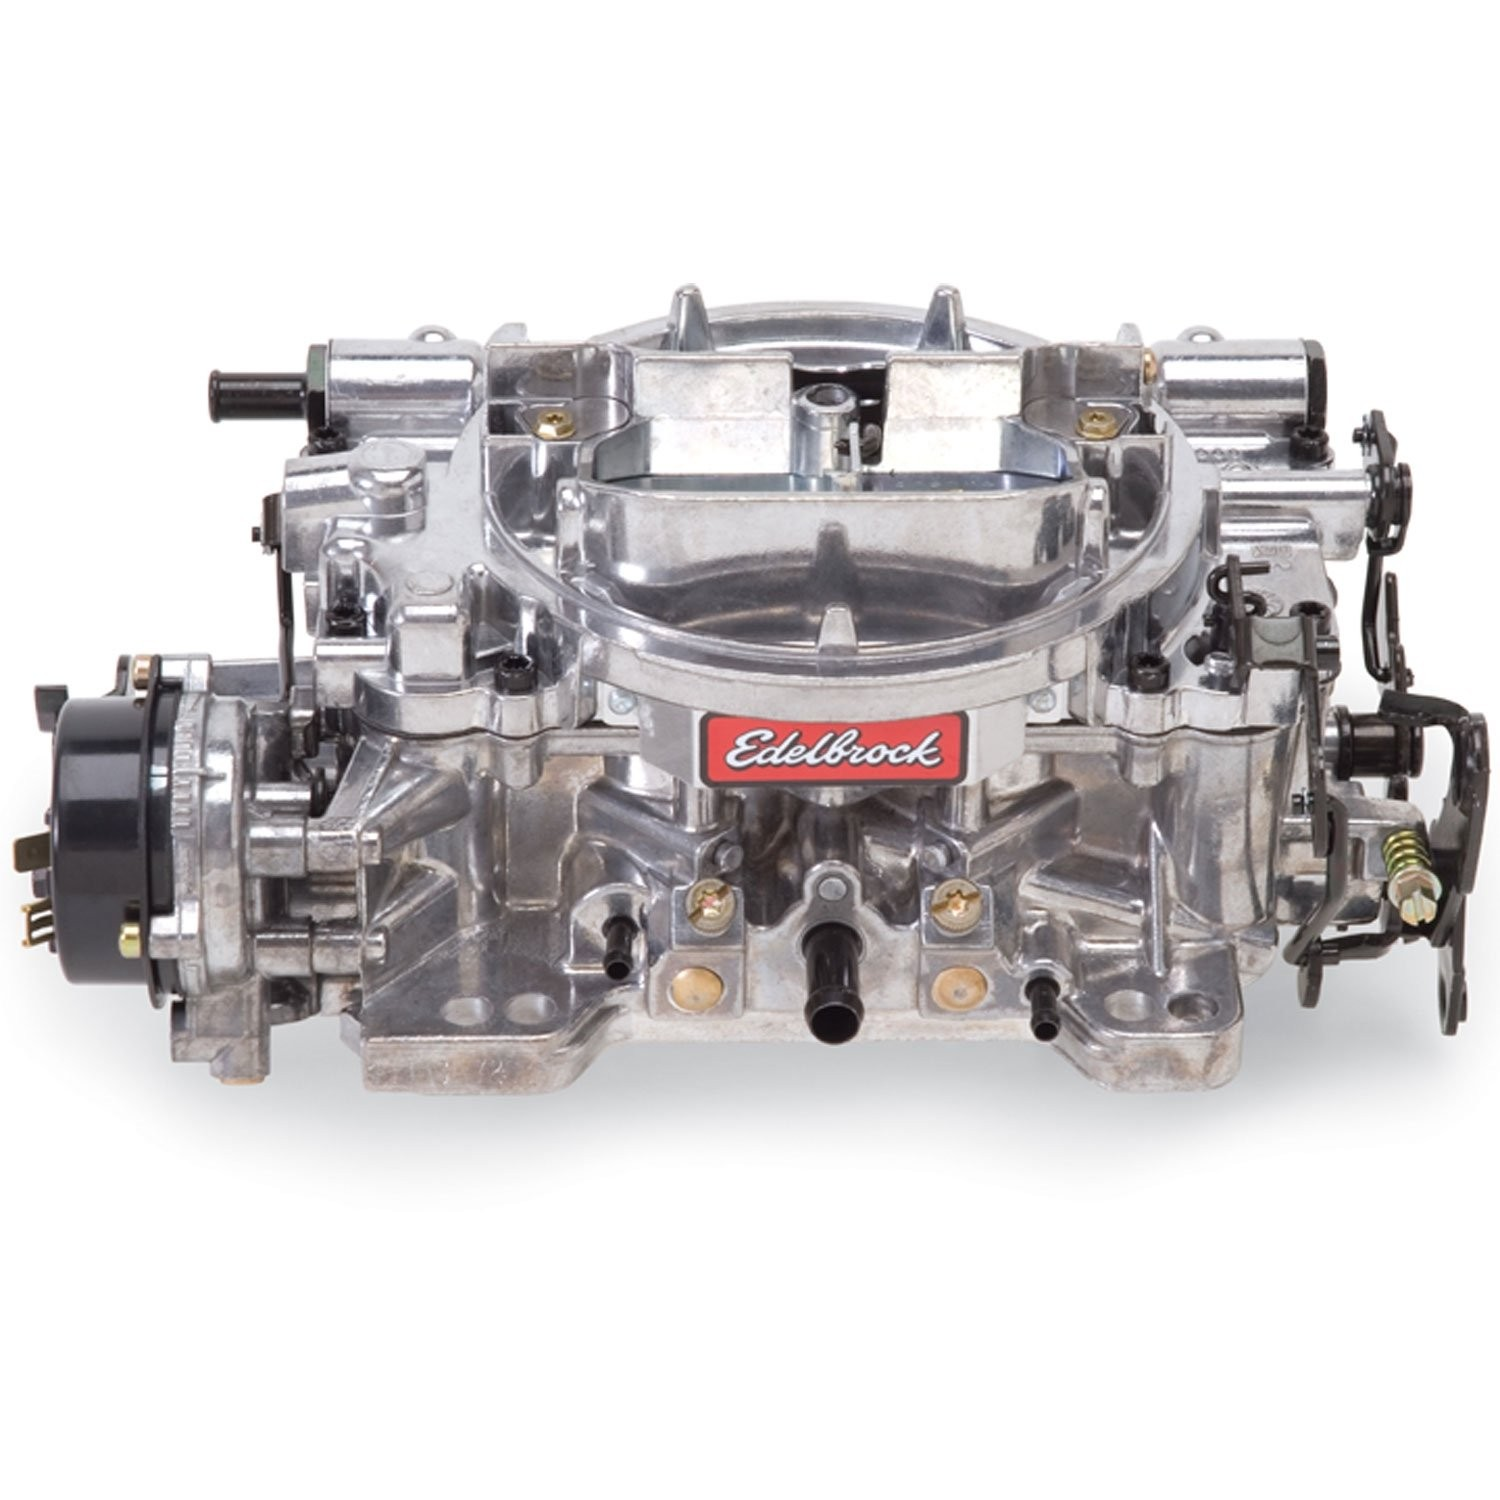 Holly Electric Choke Wire Diagram Edelbrock Thunder Series Avs F Road 650 Cfm Carburetor with Electric Choke Of Holly Electric Choke Wire Diagram